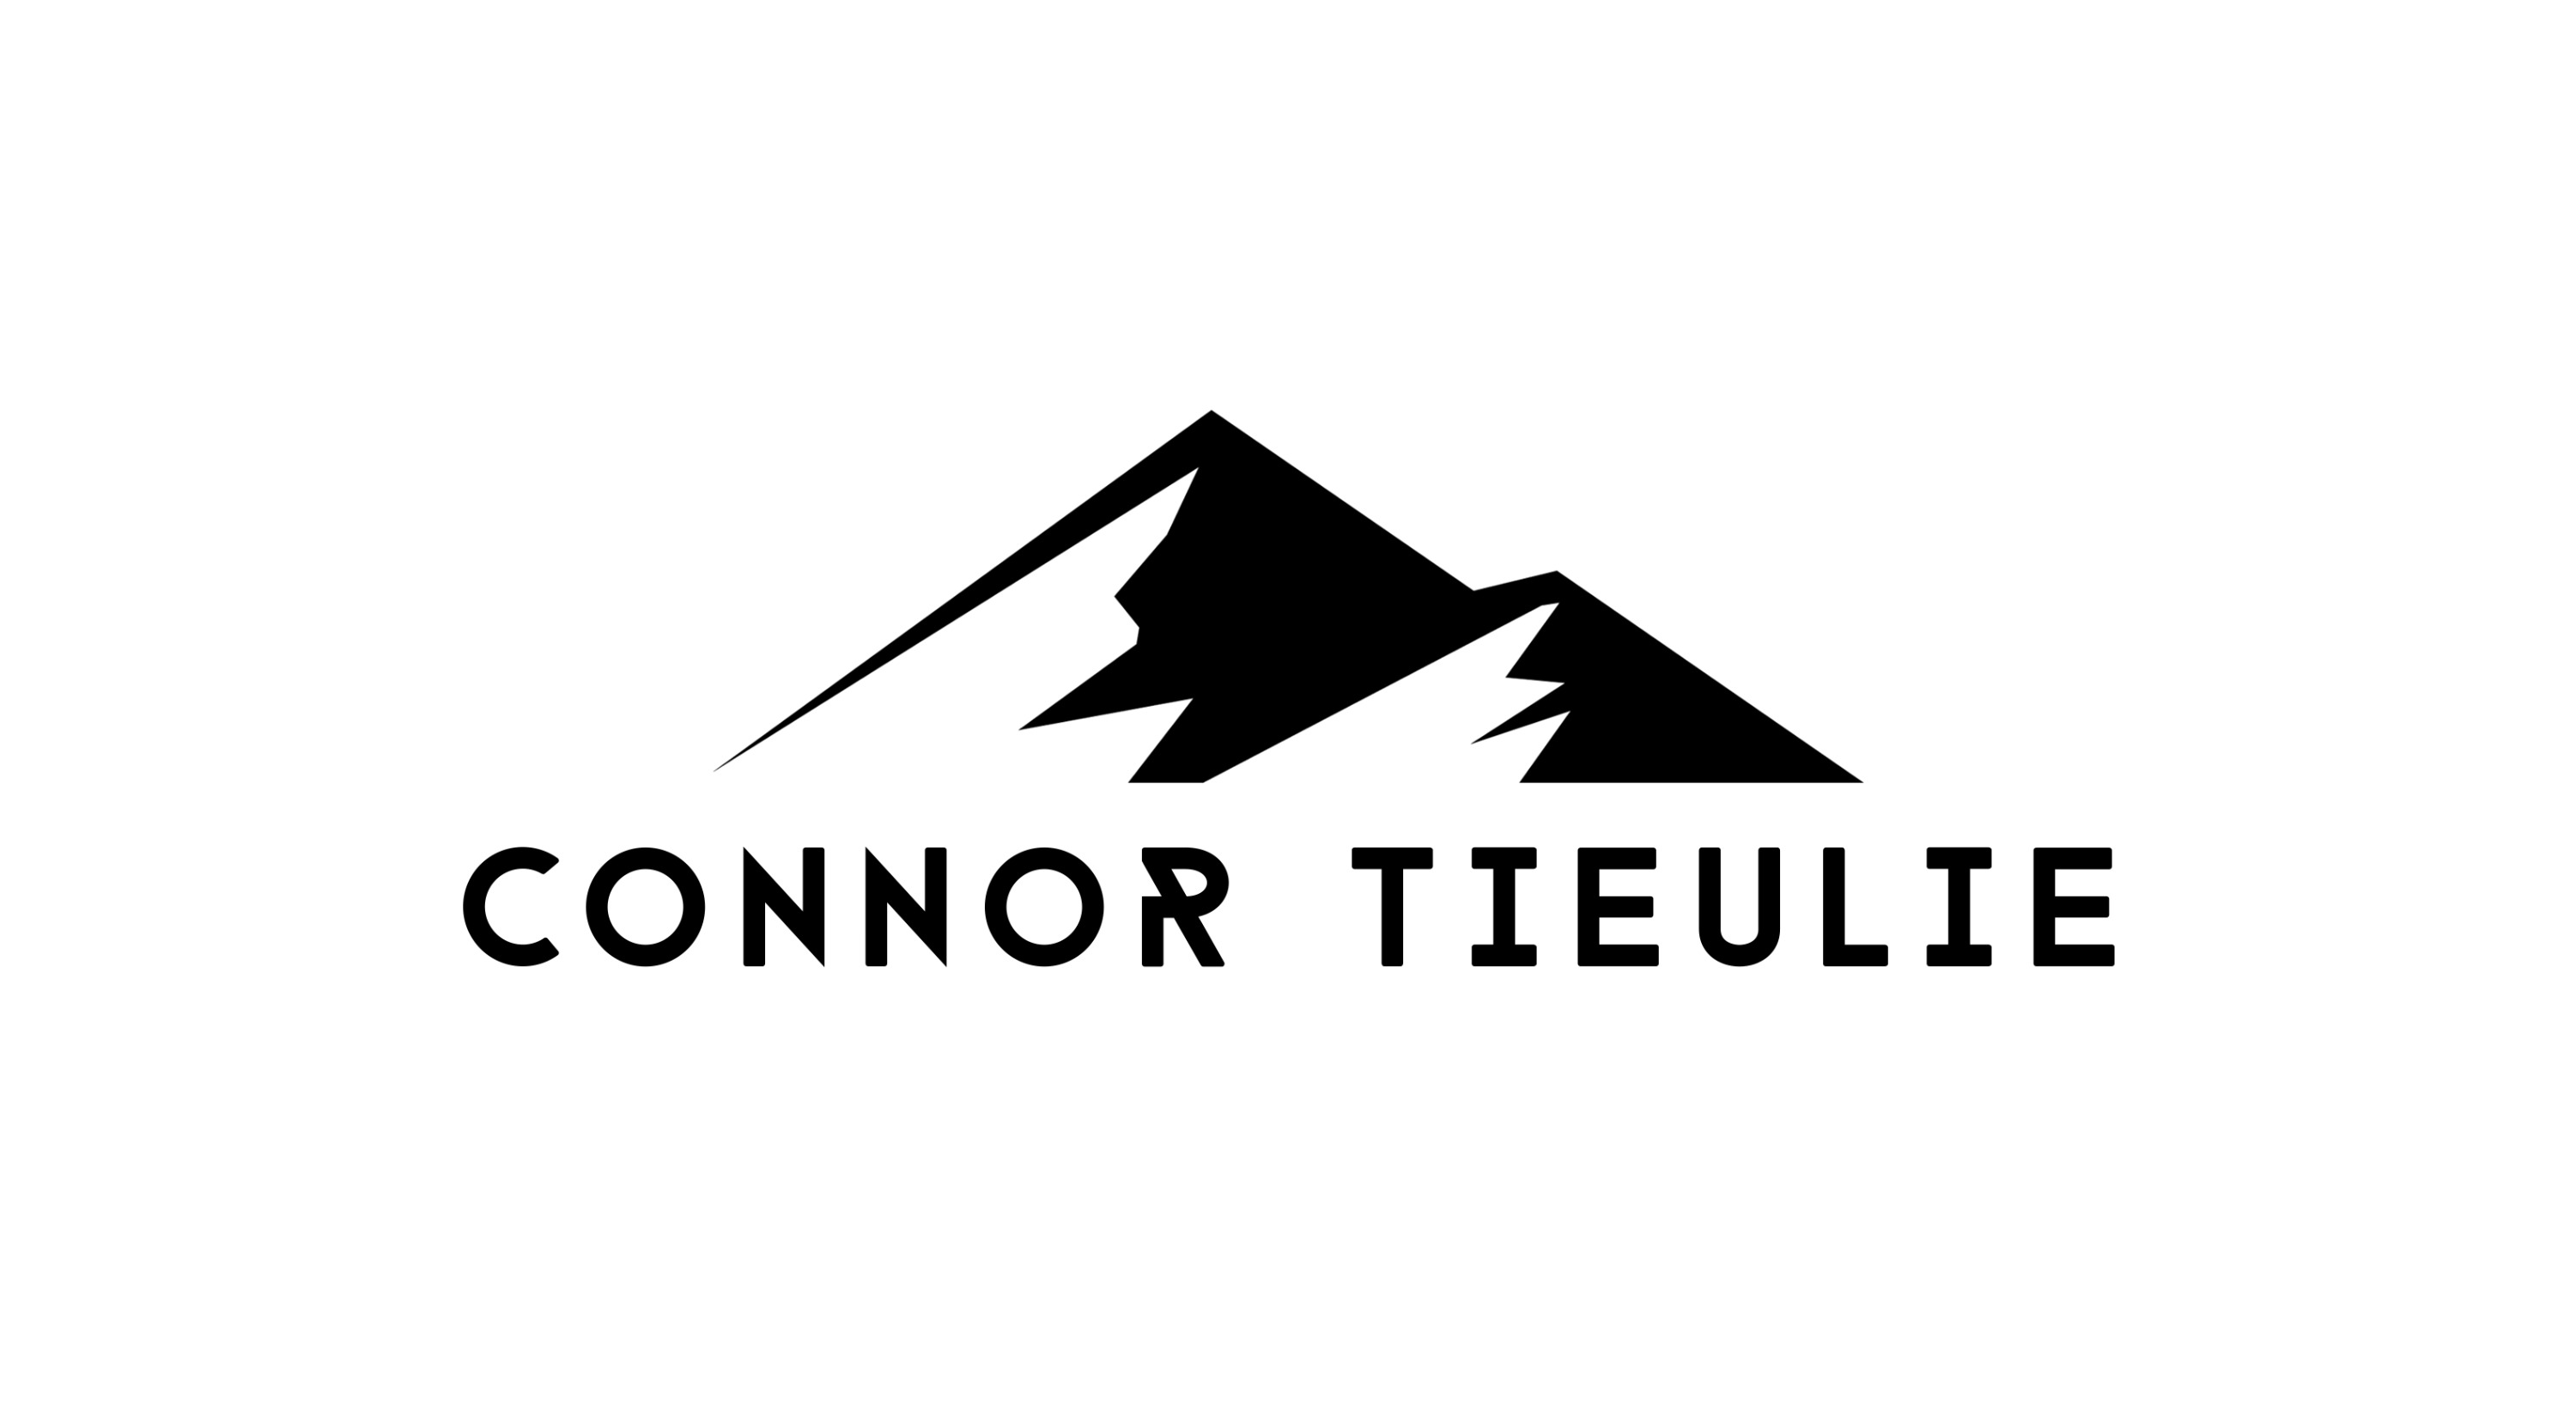 Connor Tieulie